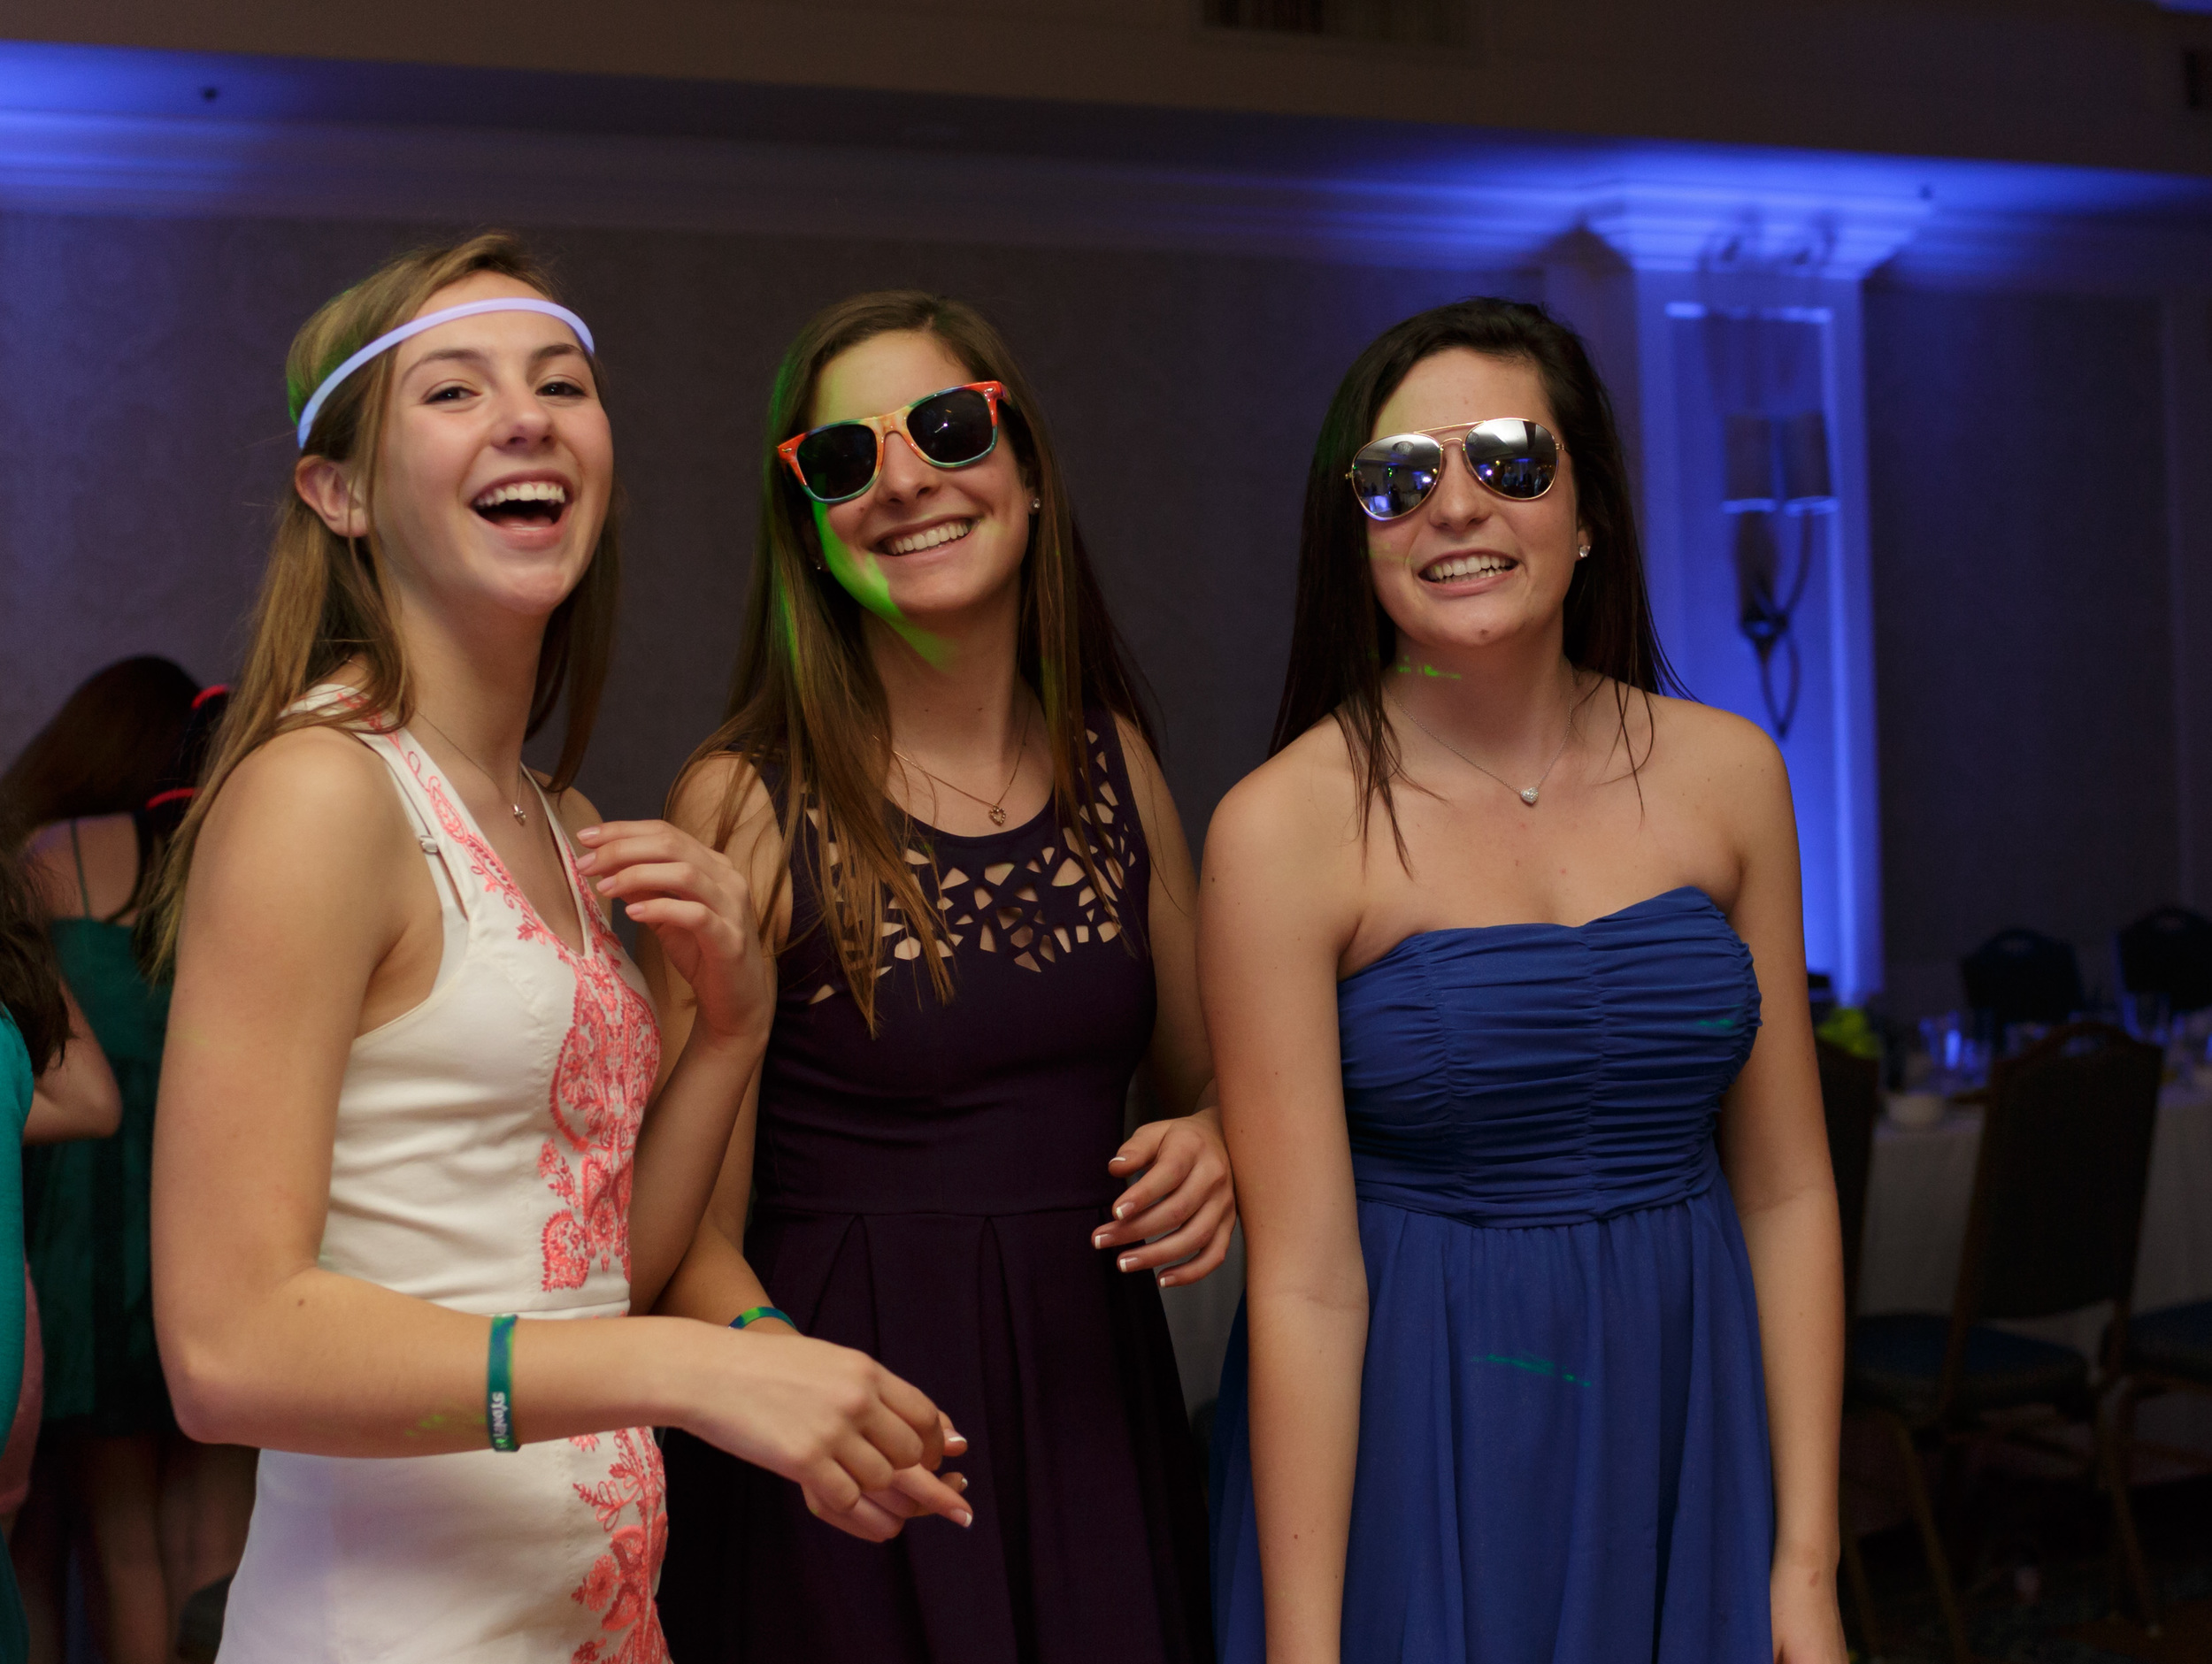 Syd_Michigan_California_Bat_Mitzvah_photographer_046